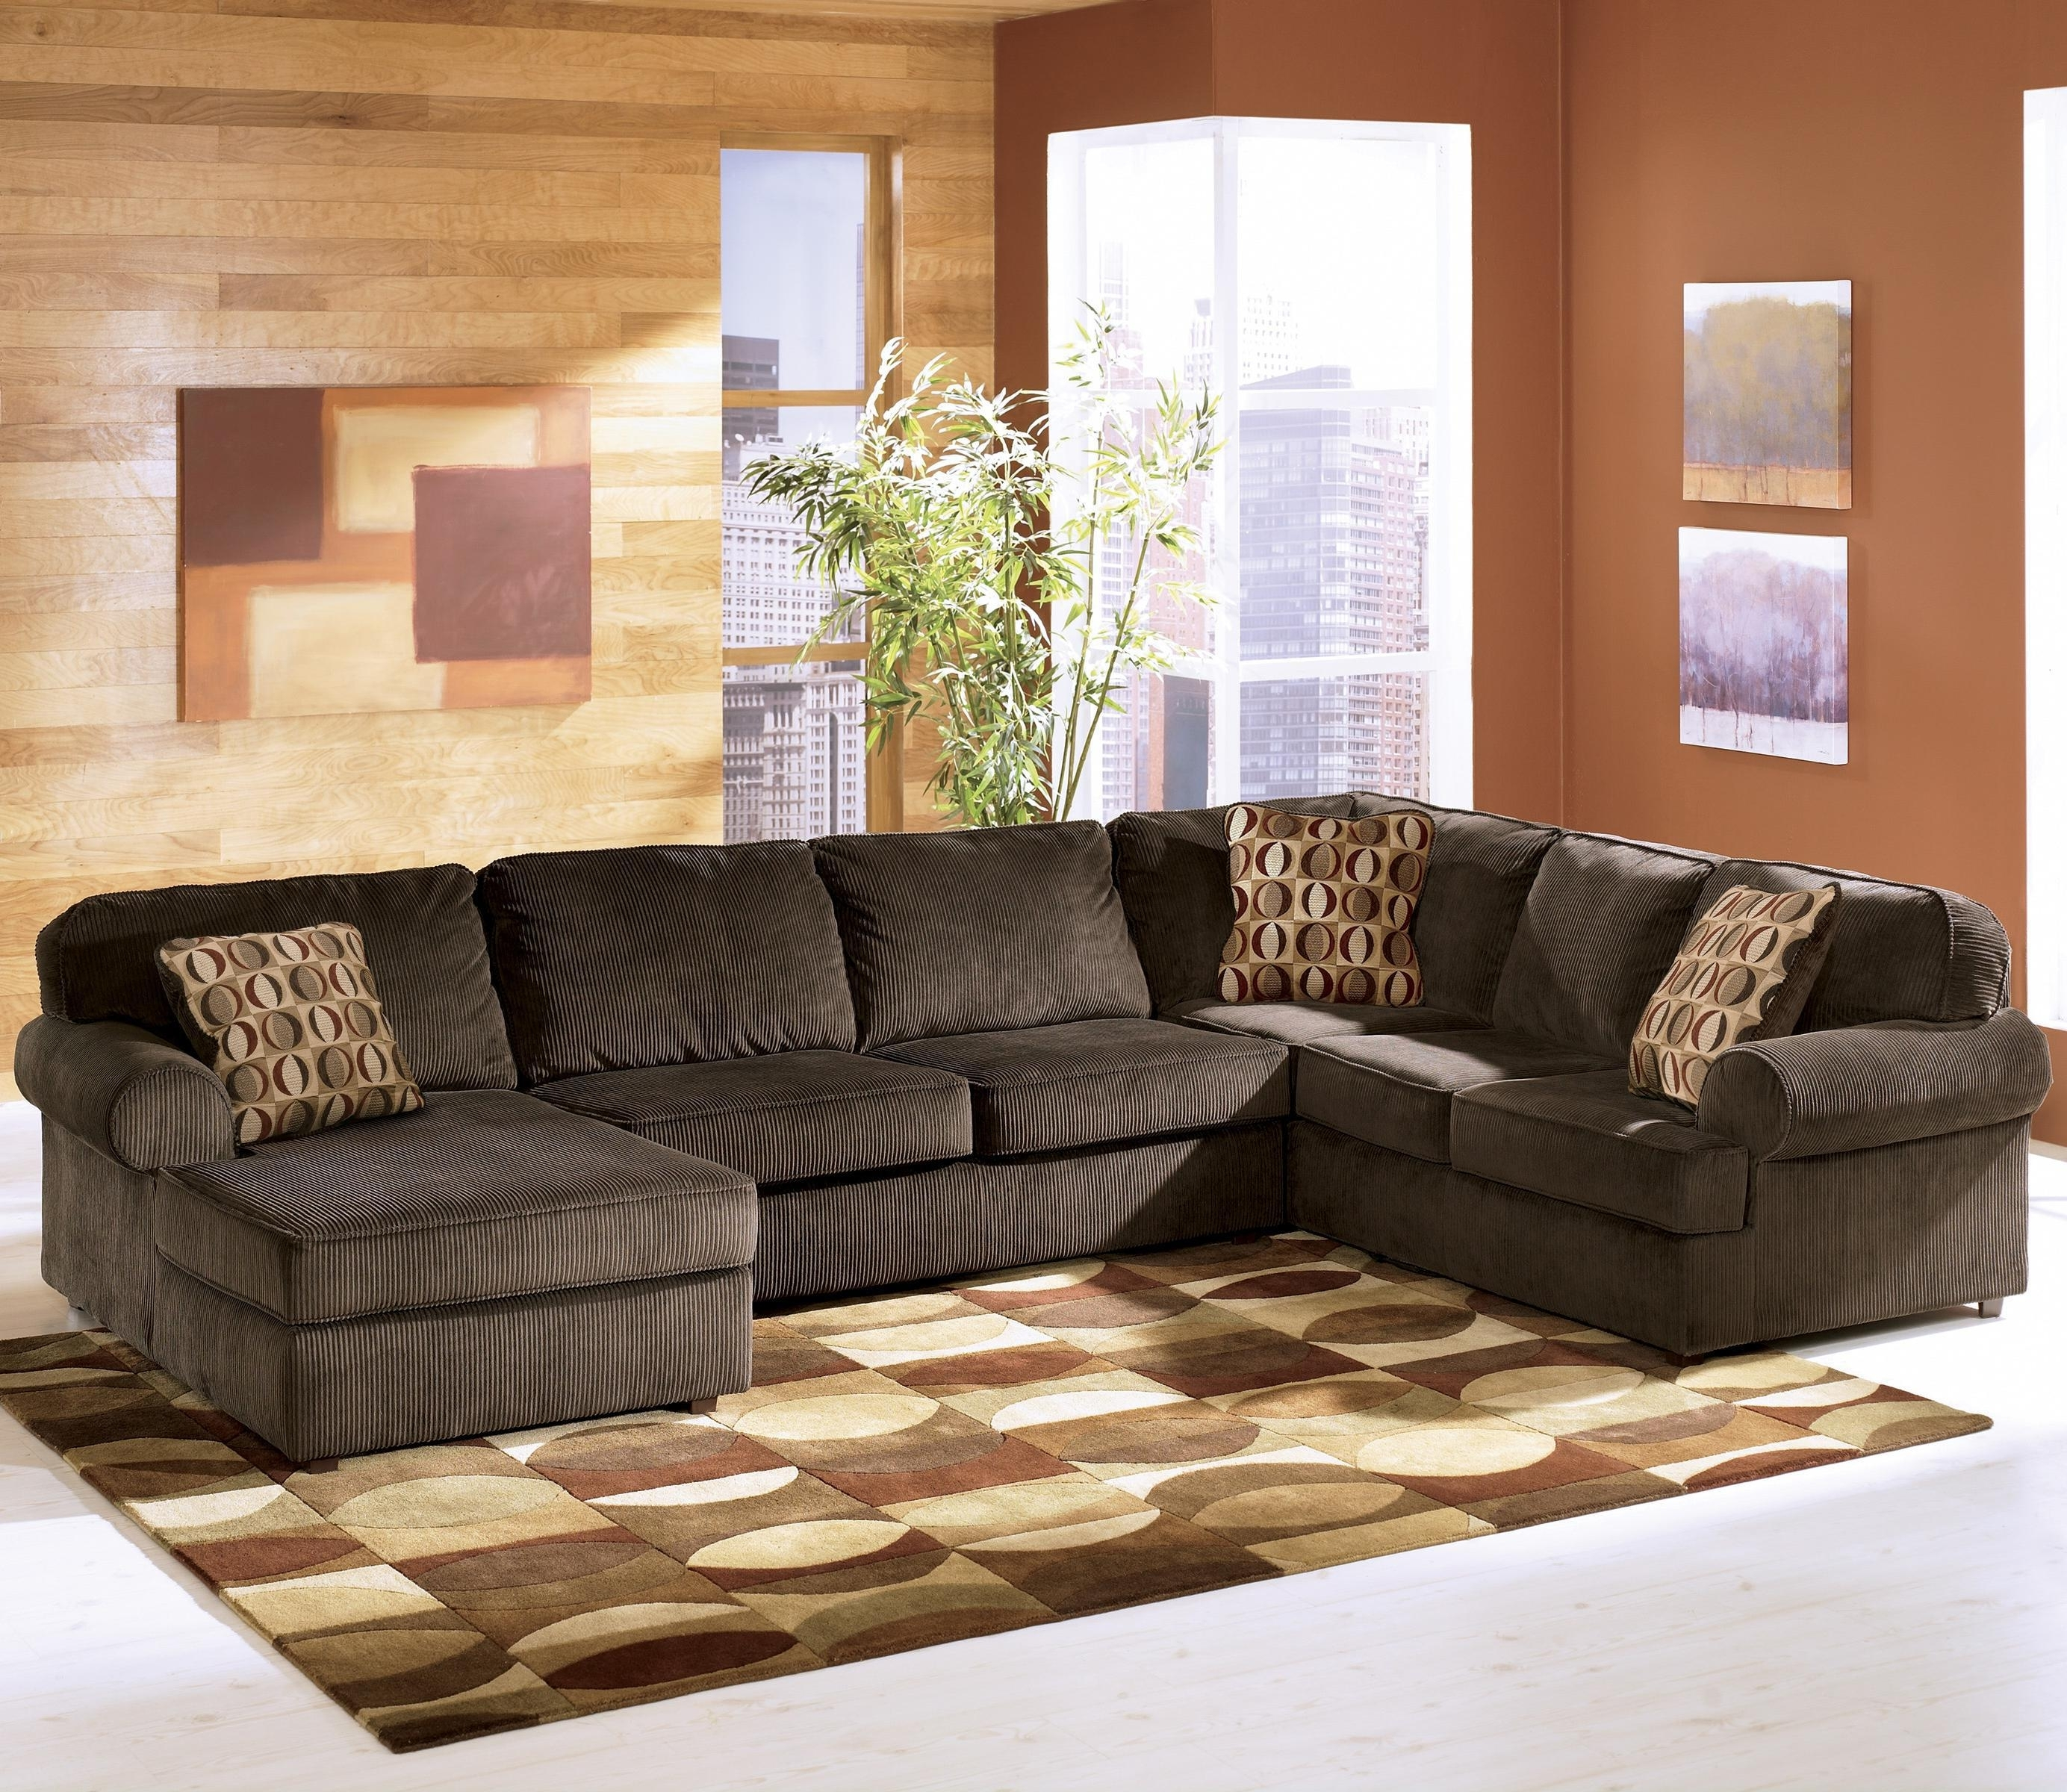 Charming Design Sectional Sofas Ashley Furniture Amazing Ideas Chair With Sectional Sofas At Ashley Furniture (View 6 of 15)